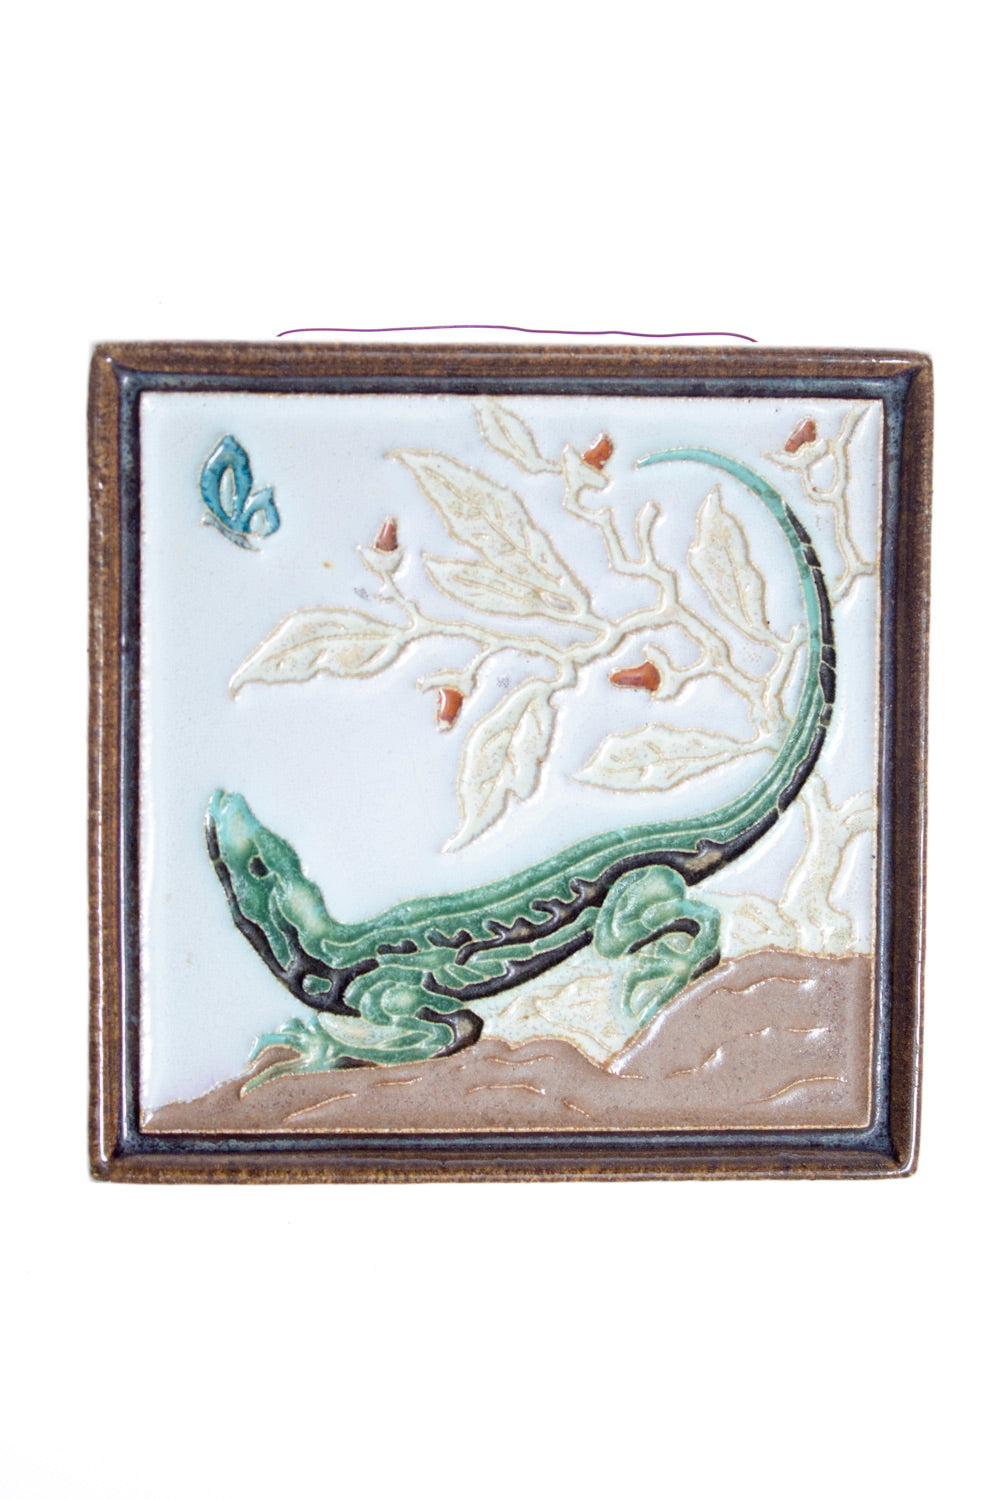 Rare Royal Delft handpainted dutch lizard